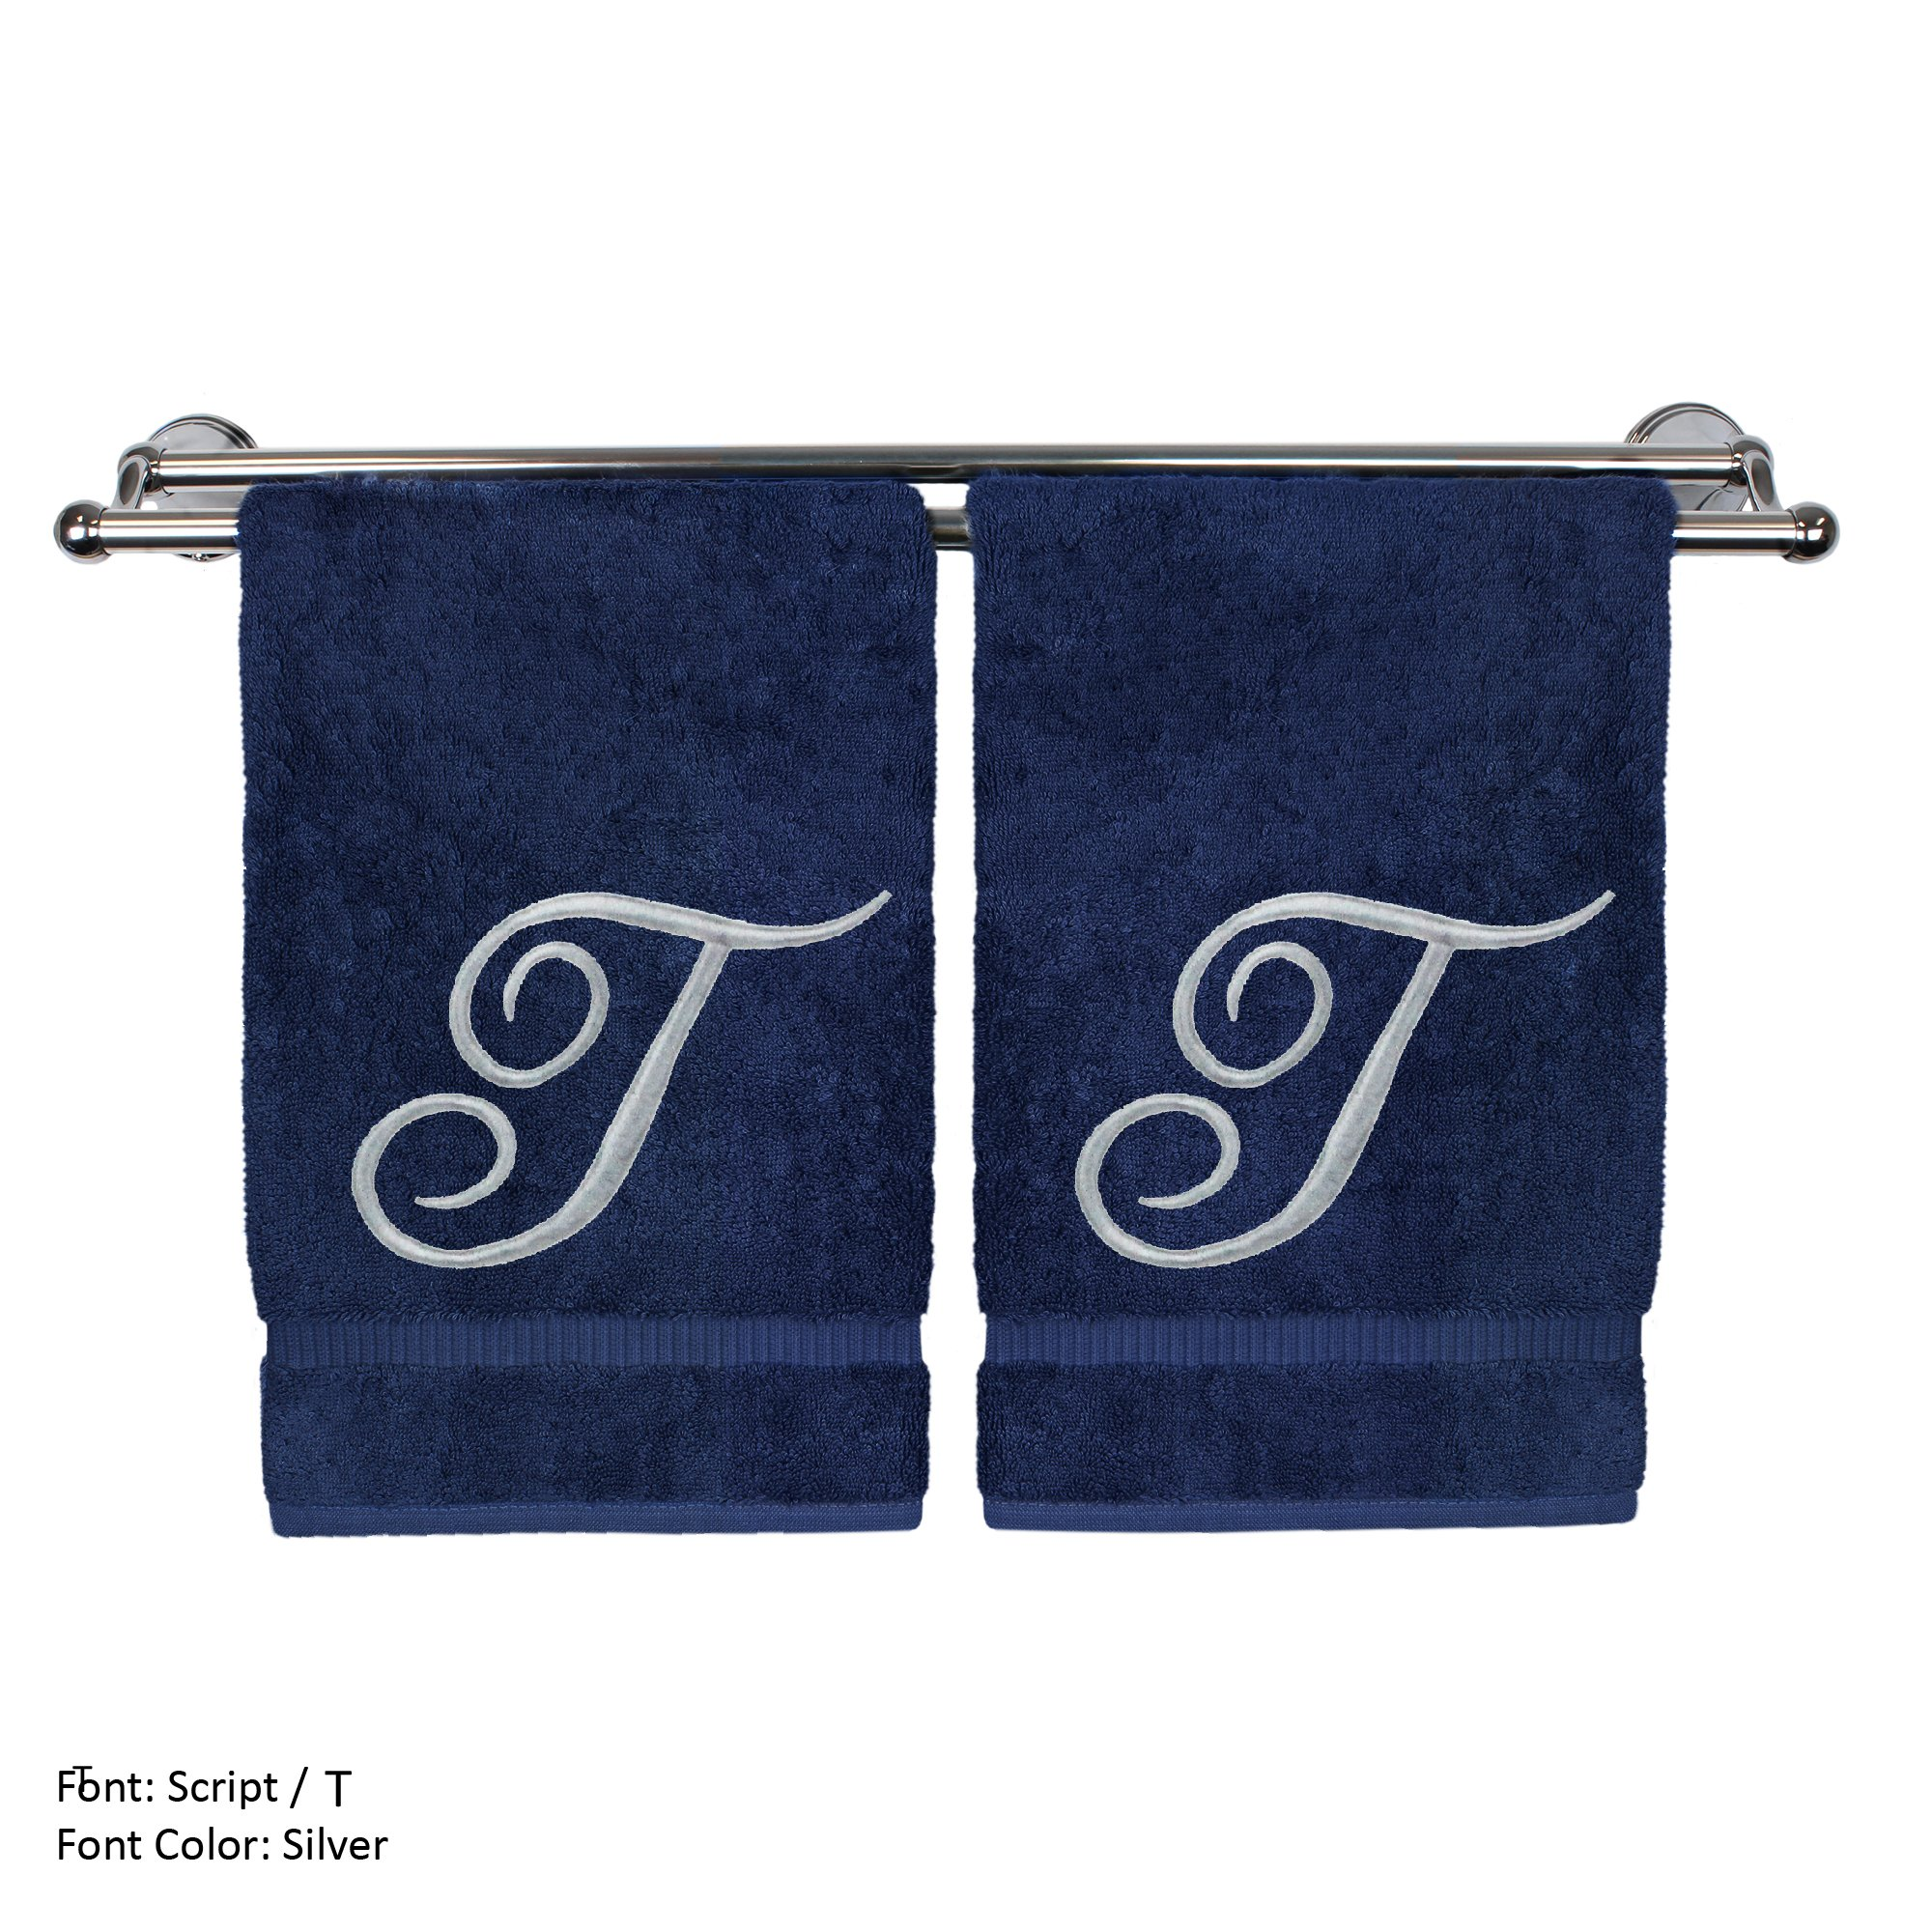 Monogrammed Hand Towel, Personalized Gift, 16 x 30 Inches - Set of 2 - Silver Embroidered Towel - Extra Absorbent 100% Turkish Cotton- Soft Terry Finish - For Bathroom, Kitchen and Spa- Script T Navy